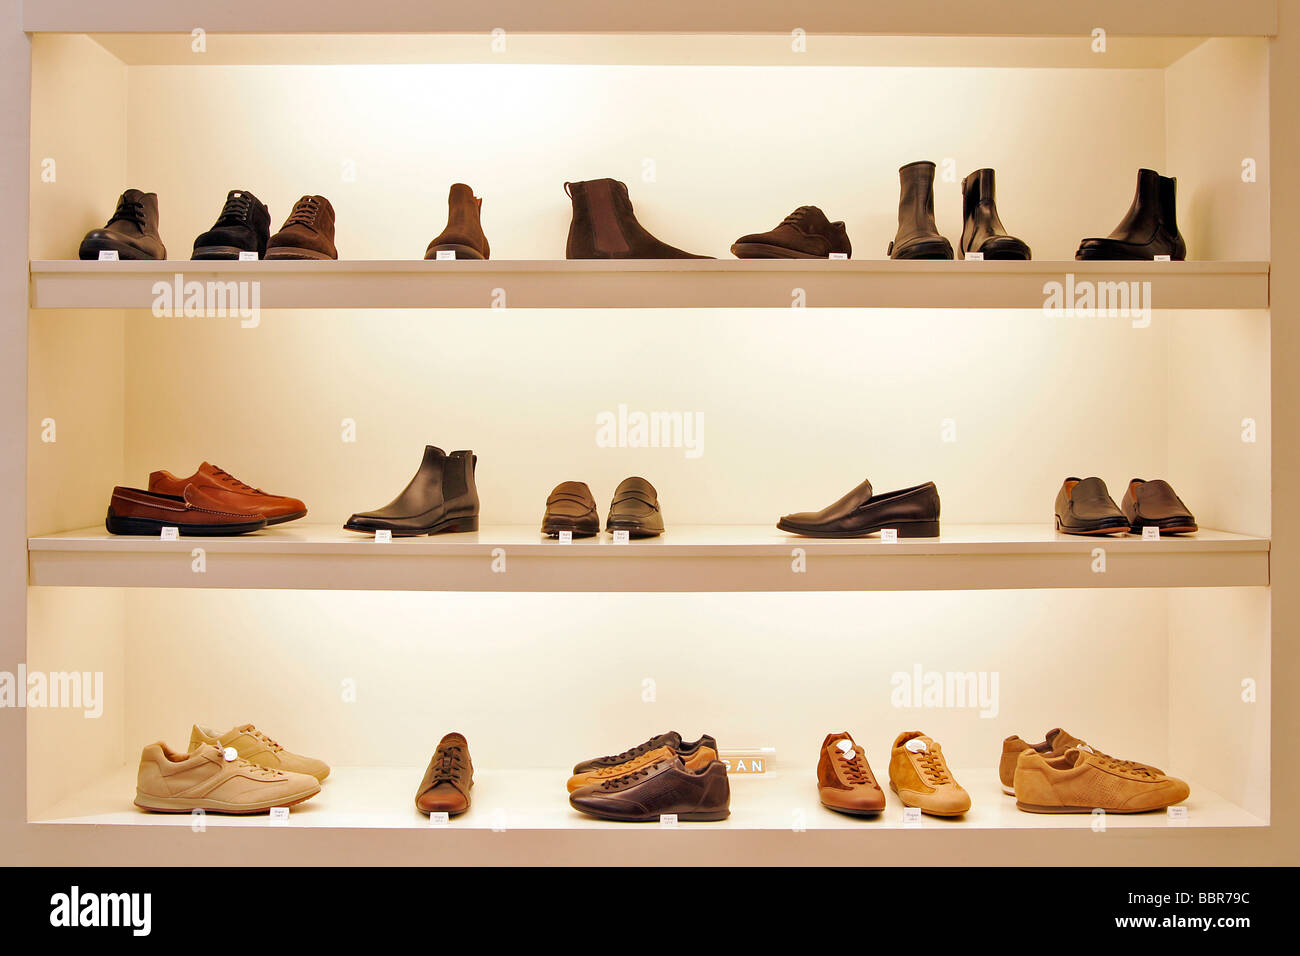 750945db55f Tods Shop Photos   Tods Shop Images - Alamy